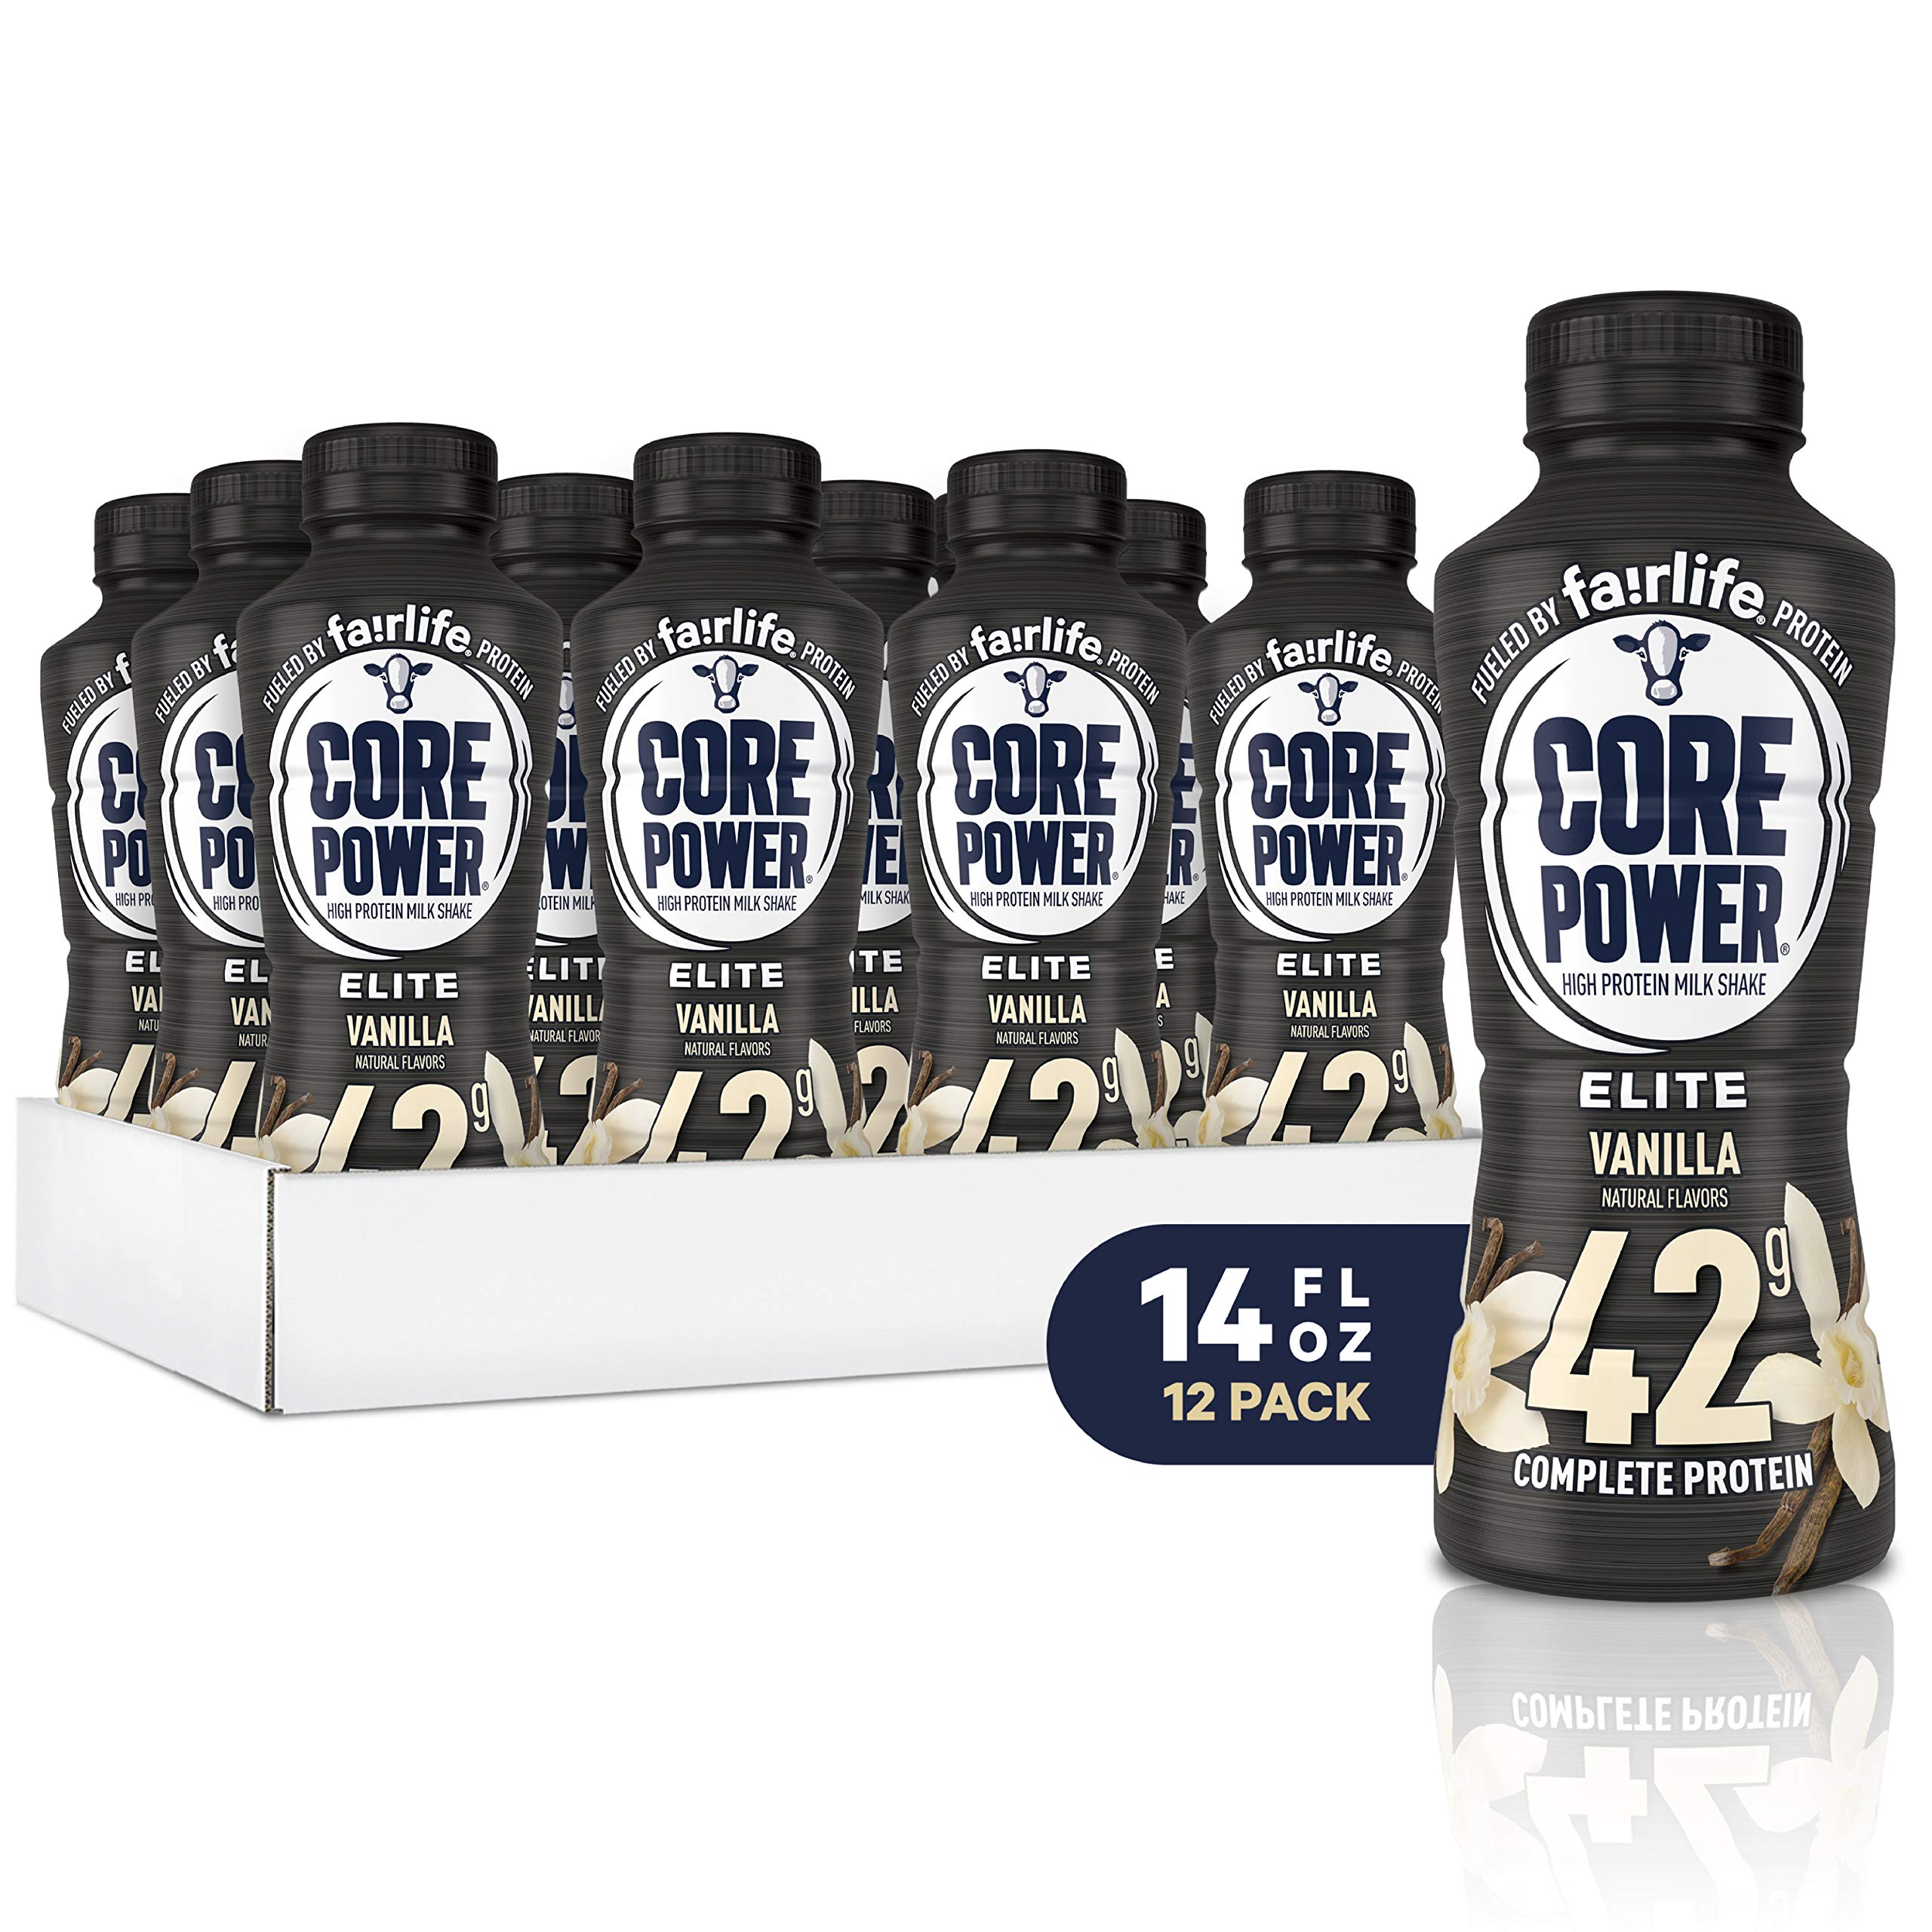 Core Power Elite High Protein Shakes (42g), Vanilla, Ready To Drink for Workout Recovery, 14 Fl Oz Bottles (12 Pack) by Core Power